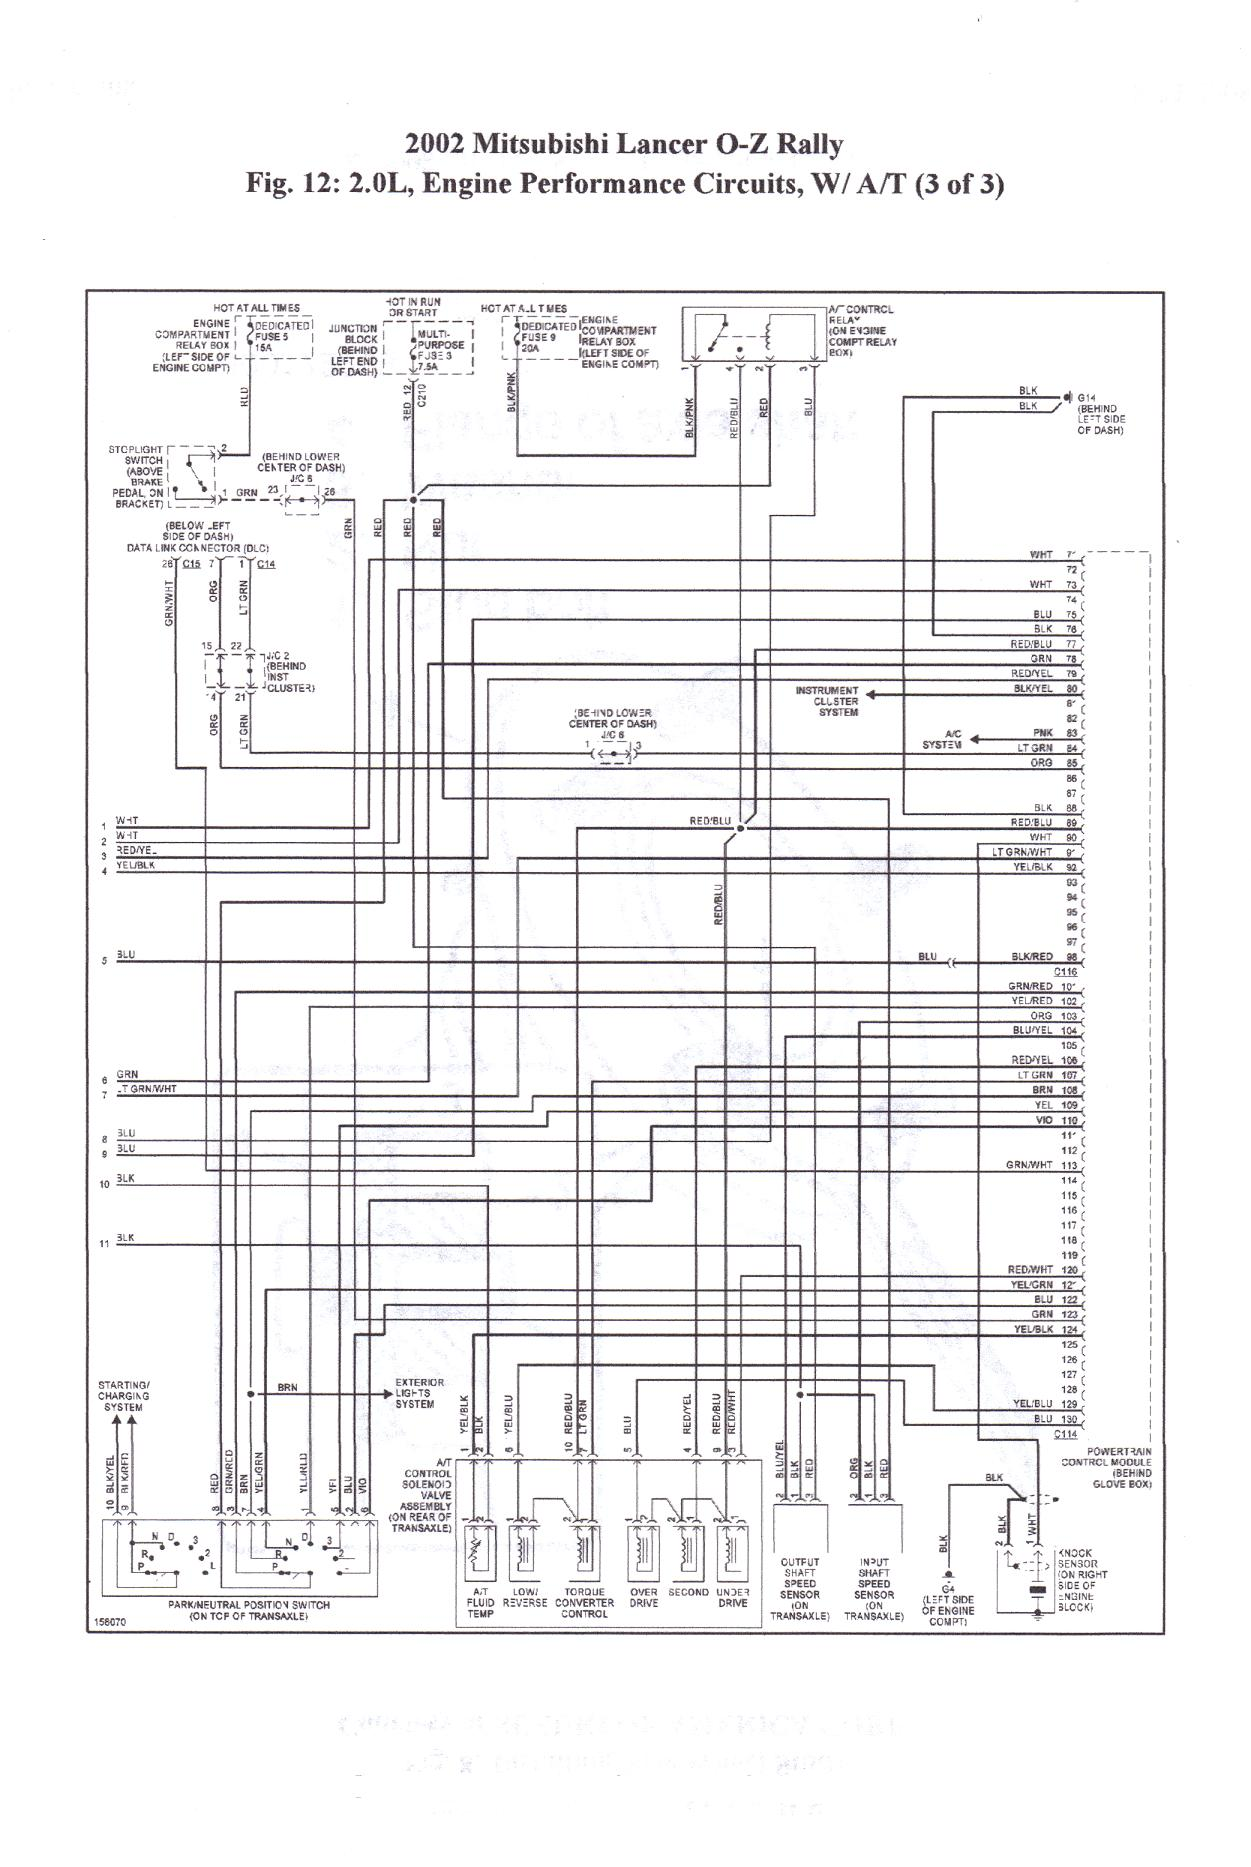 2001 vw jetta stereo wiring diagram 2001 image 2000 vw jetta radio wiring diagram smartdraw diagrams on 2001 vw jetta stereo wiring diagram